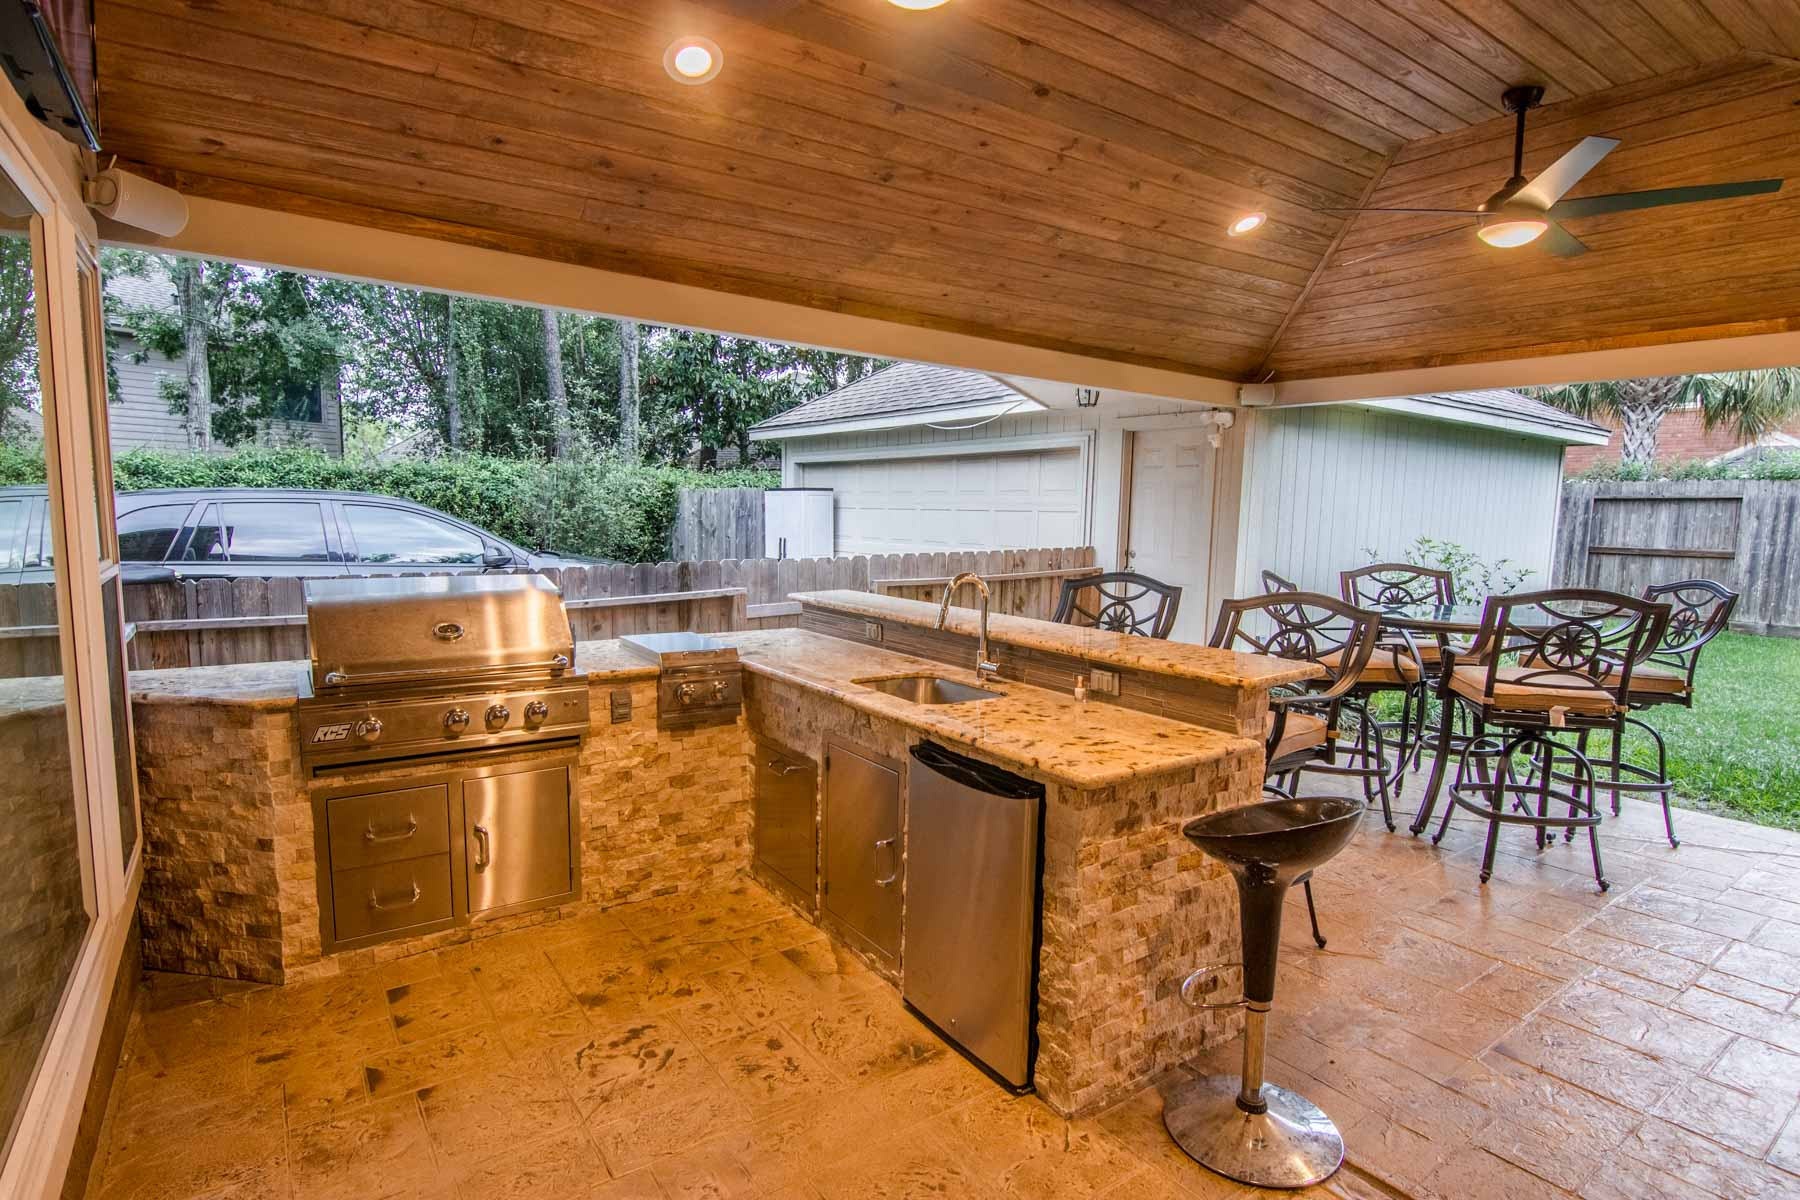 backyard kitchens updating kitchen cabinets outdoor - hhi patio covers houston